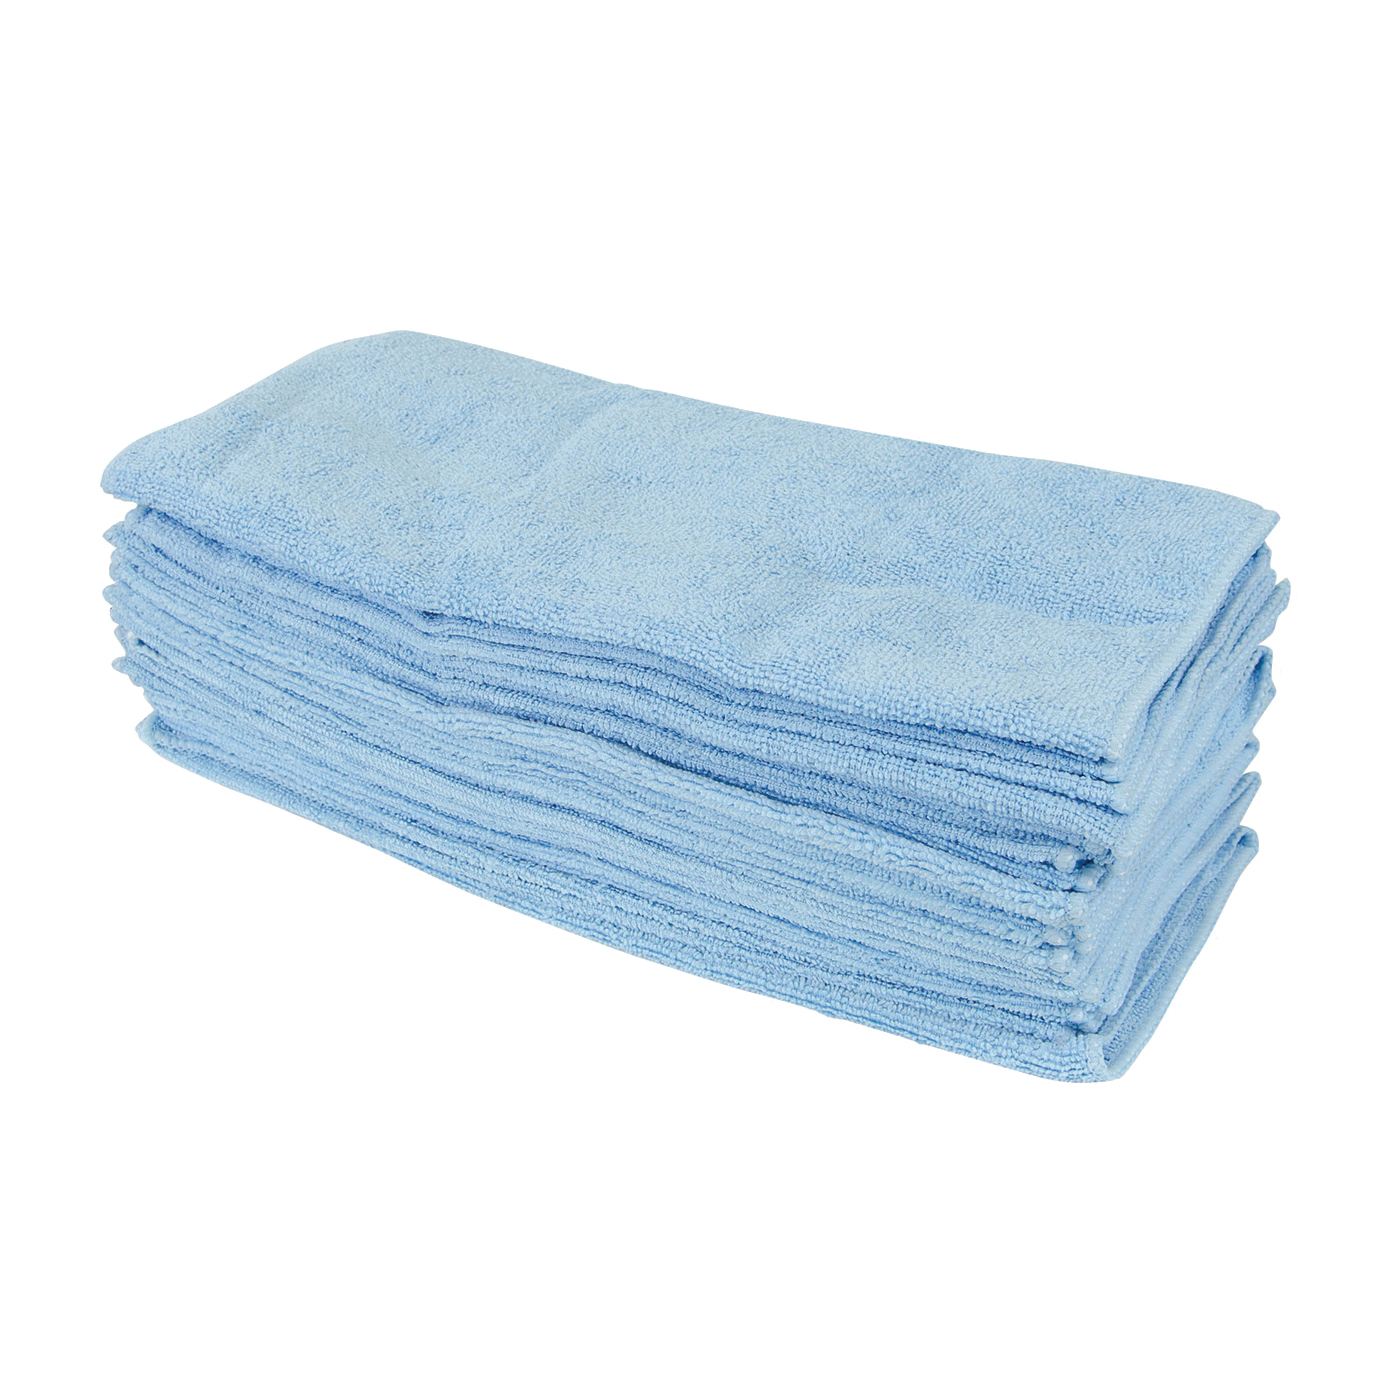 Picture of Quickie 490-24RM Microfiber Cloth Towel, 14 in L, 14 in W, Microfiber Cloth, 24, Pack